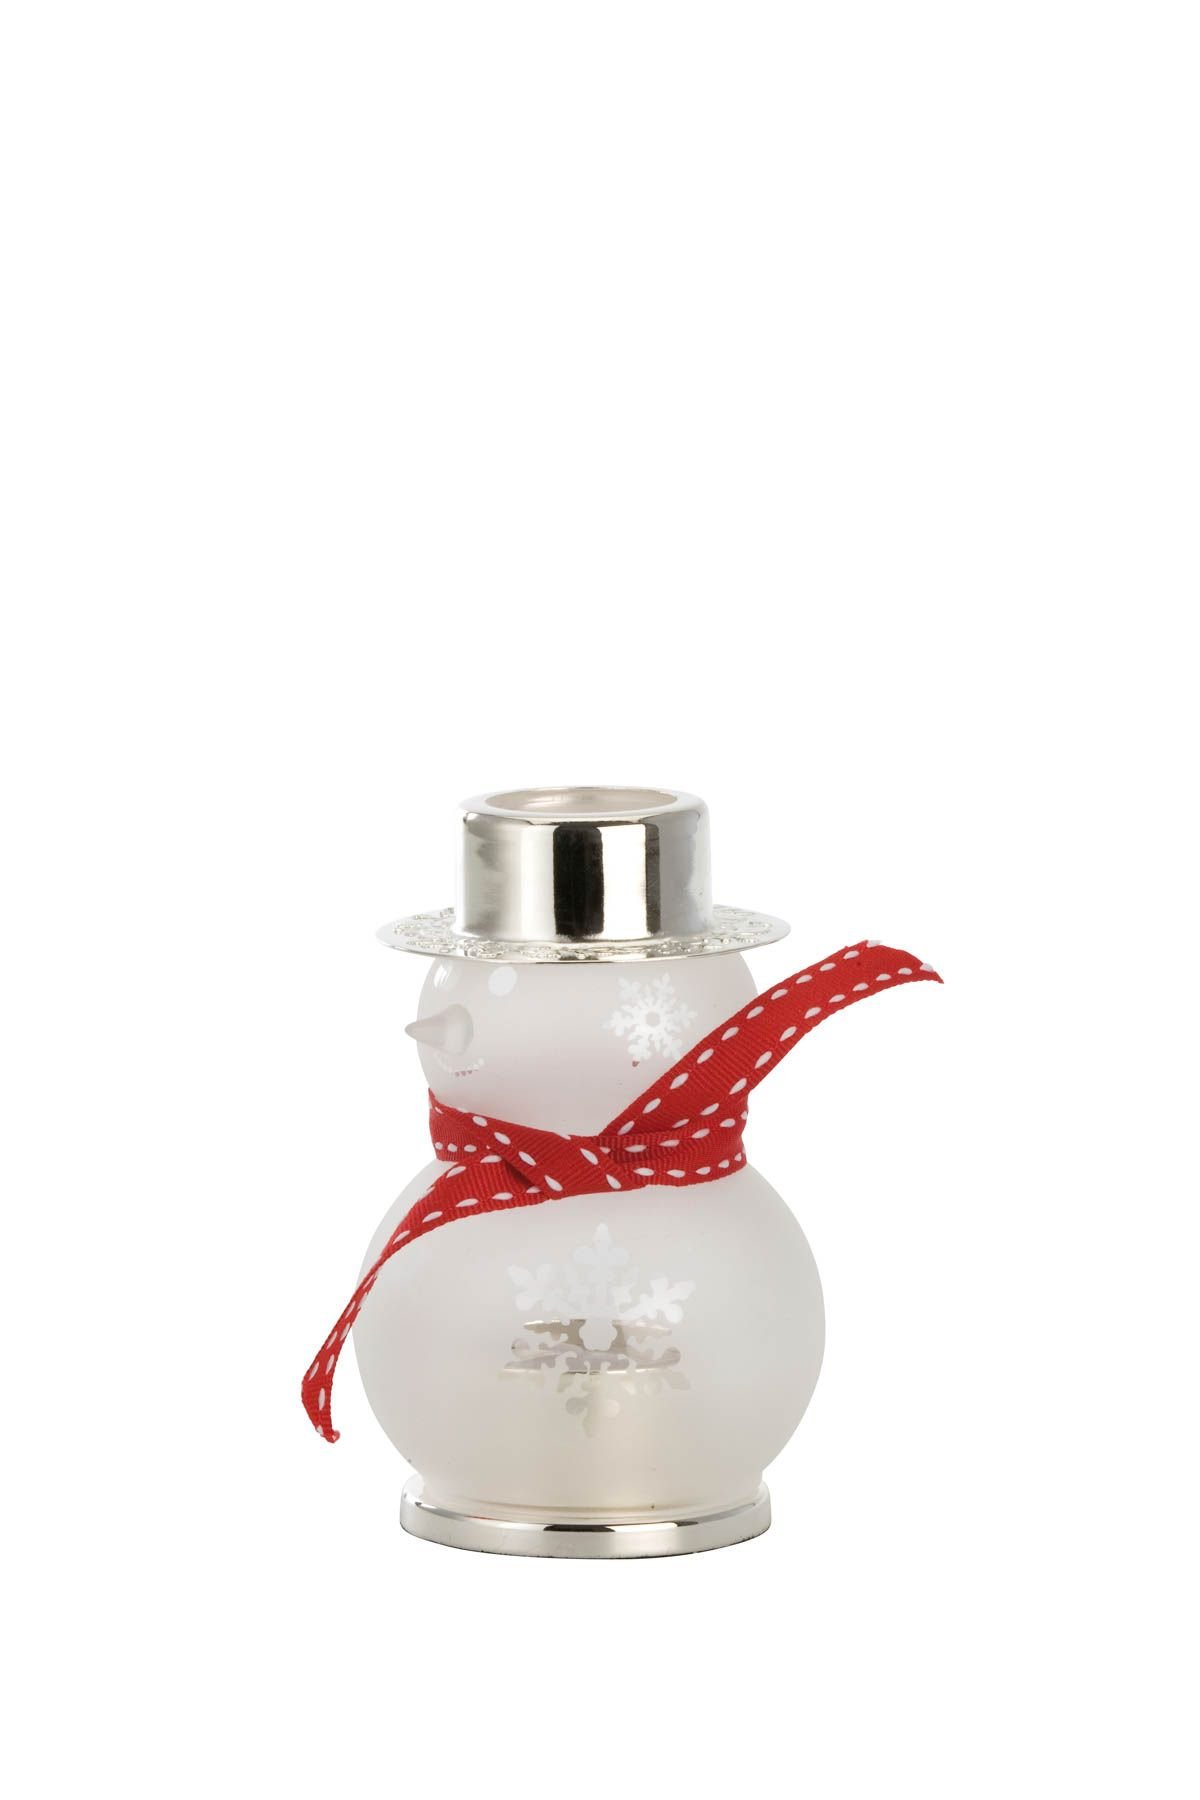 Tealight Holder Frosted Glass Snowman, small, with red ribbon